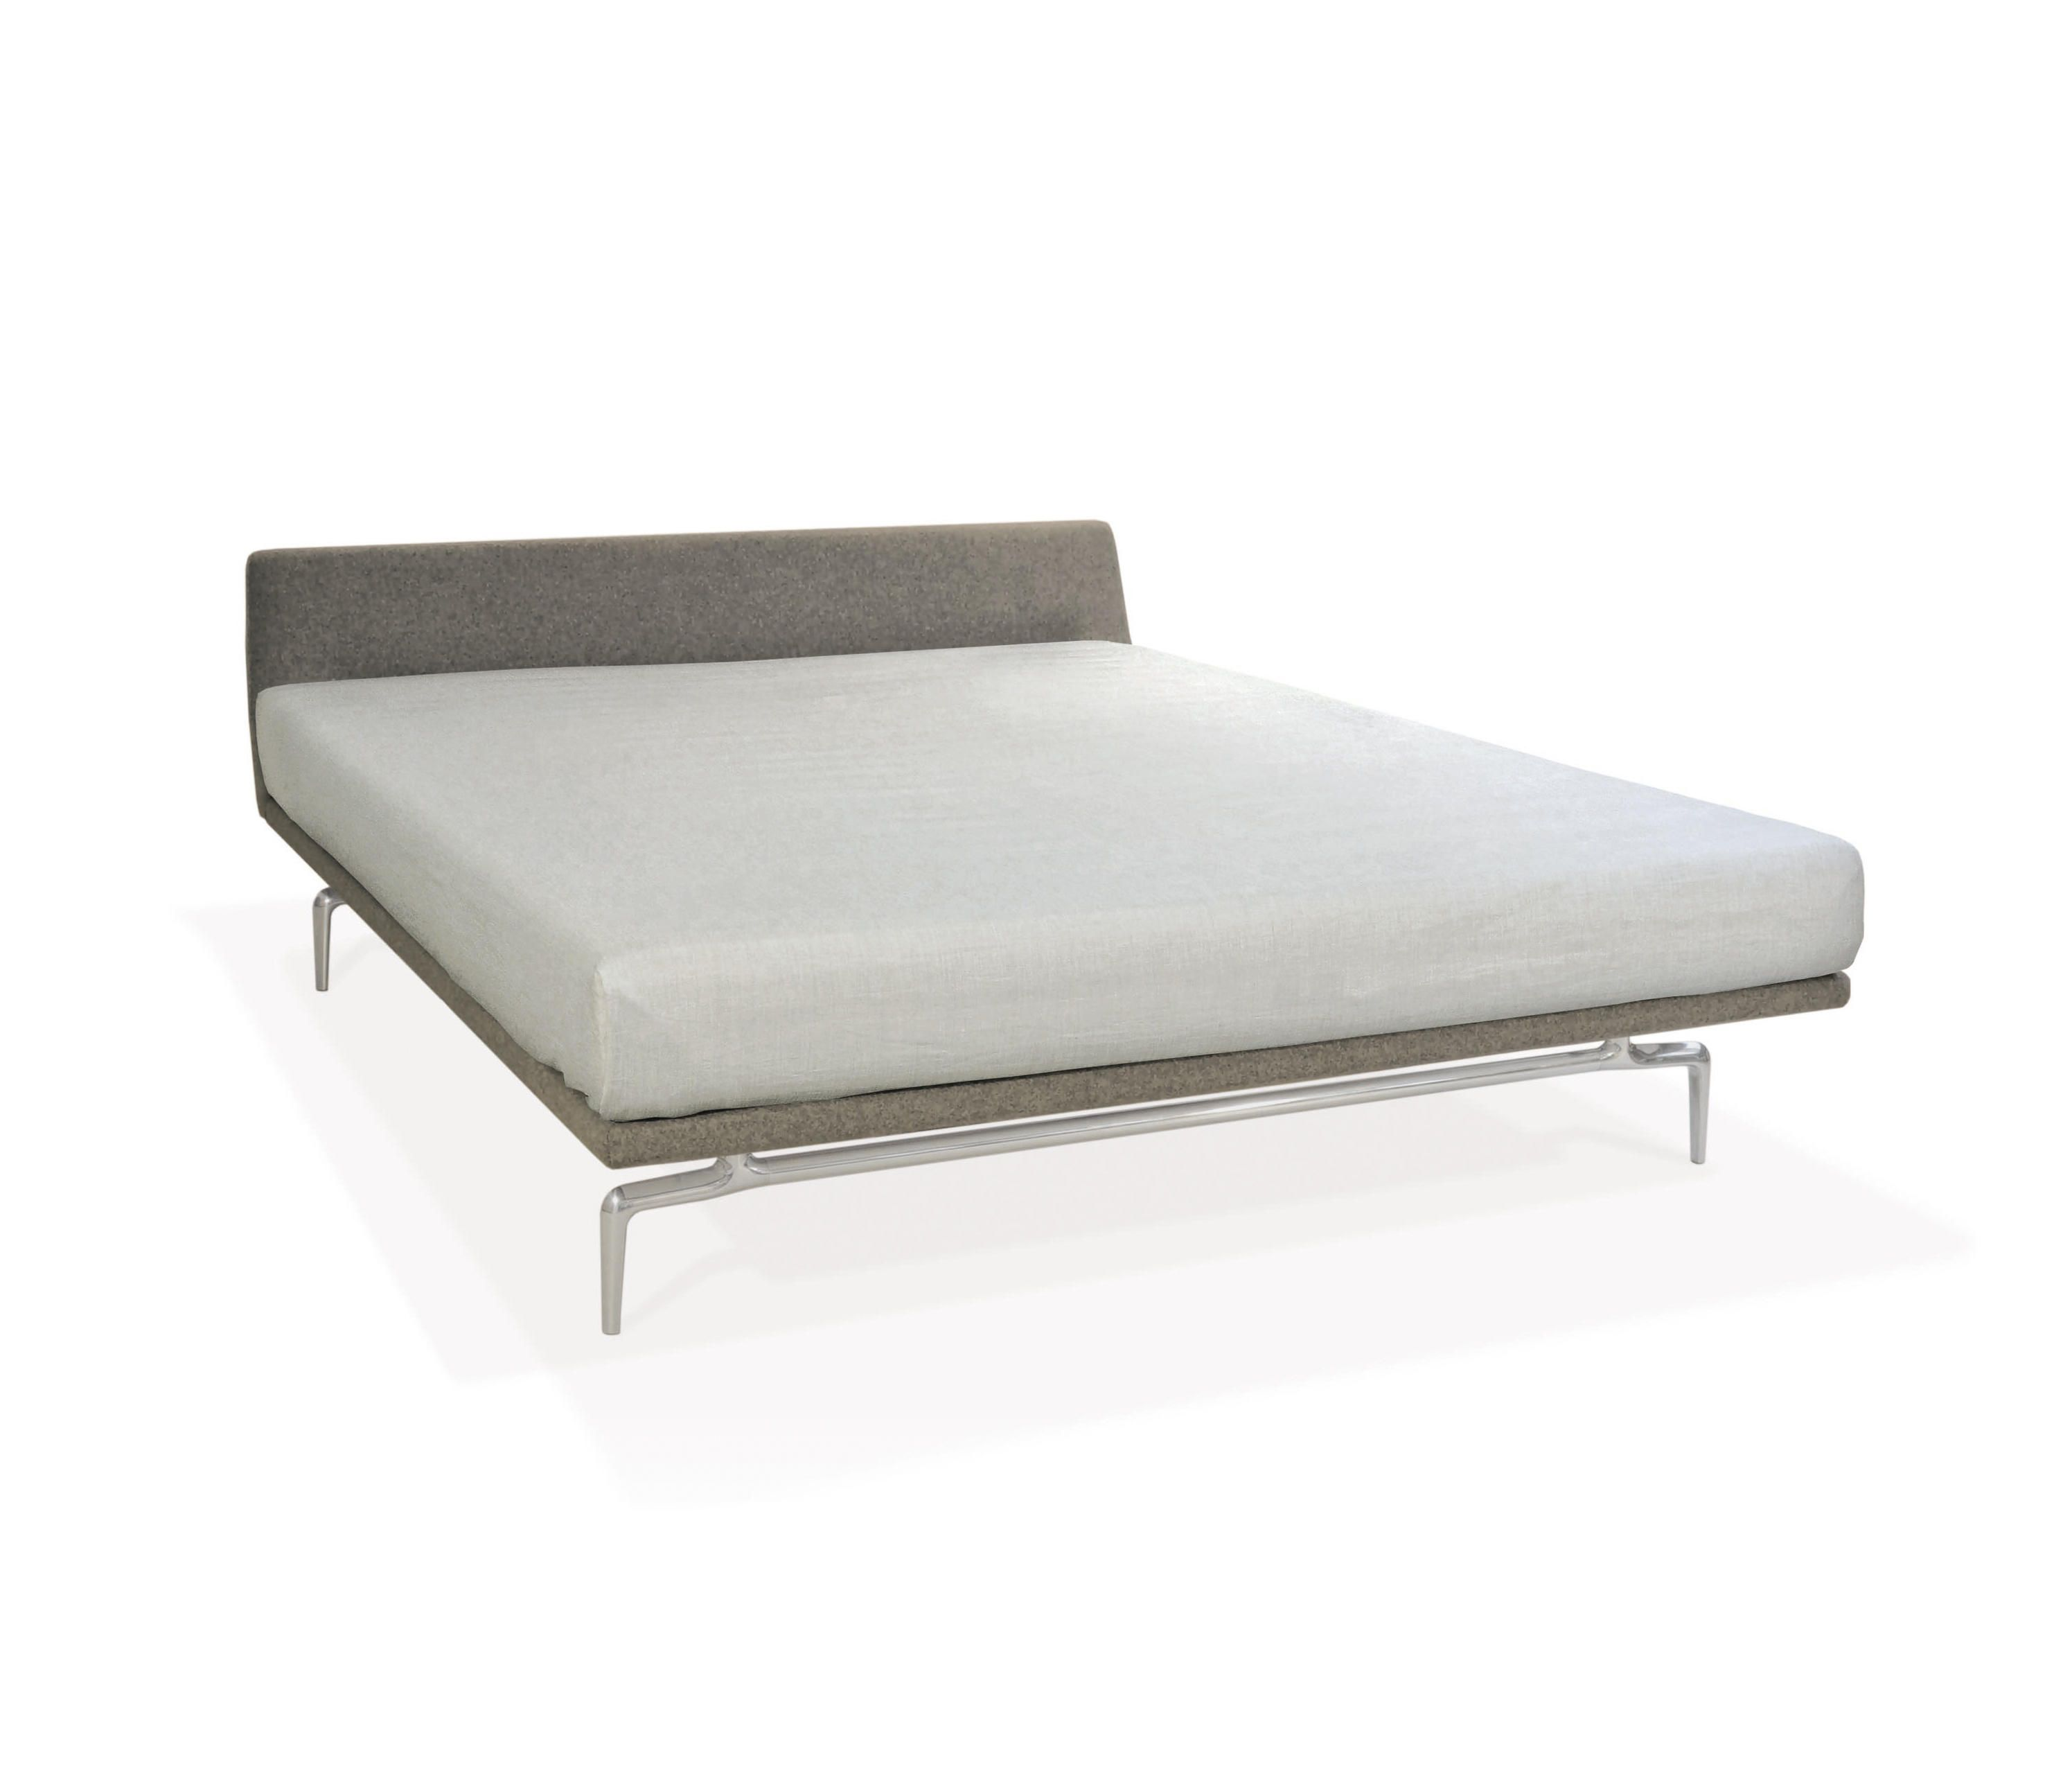 Lenao Bed by PIURIC | Double beds